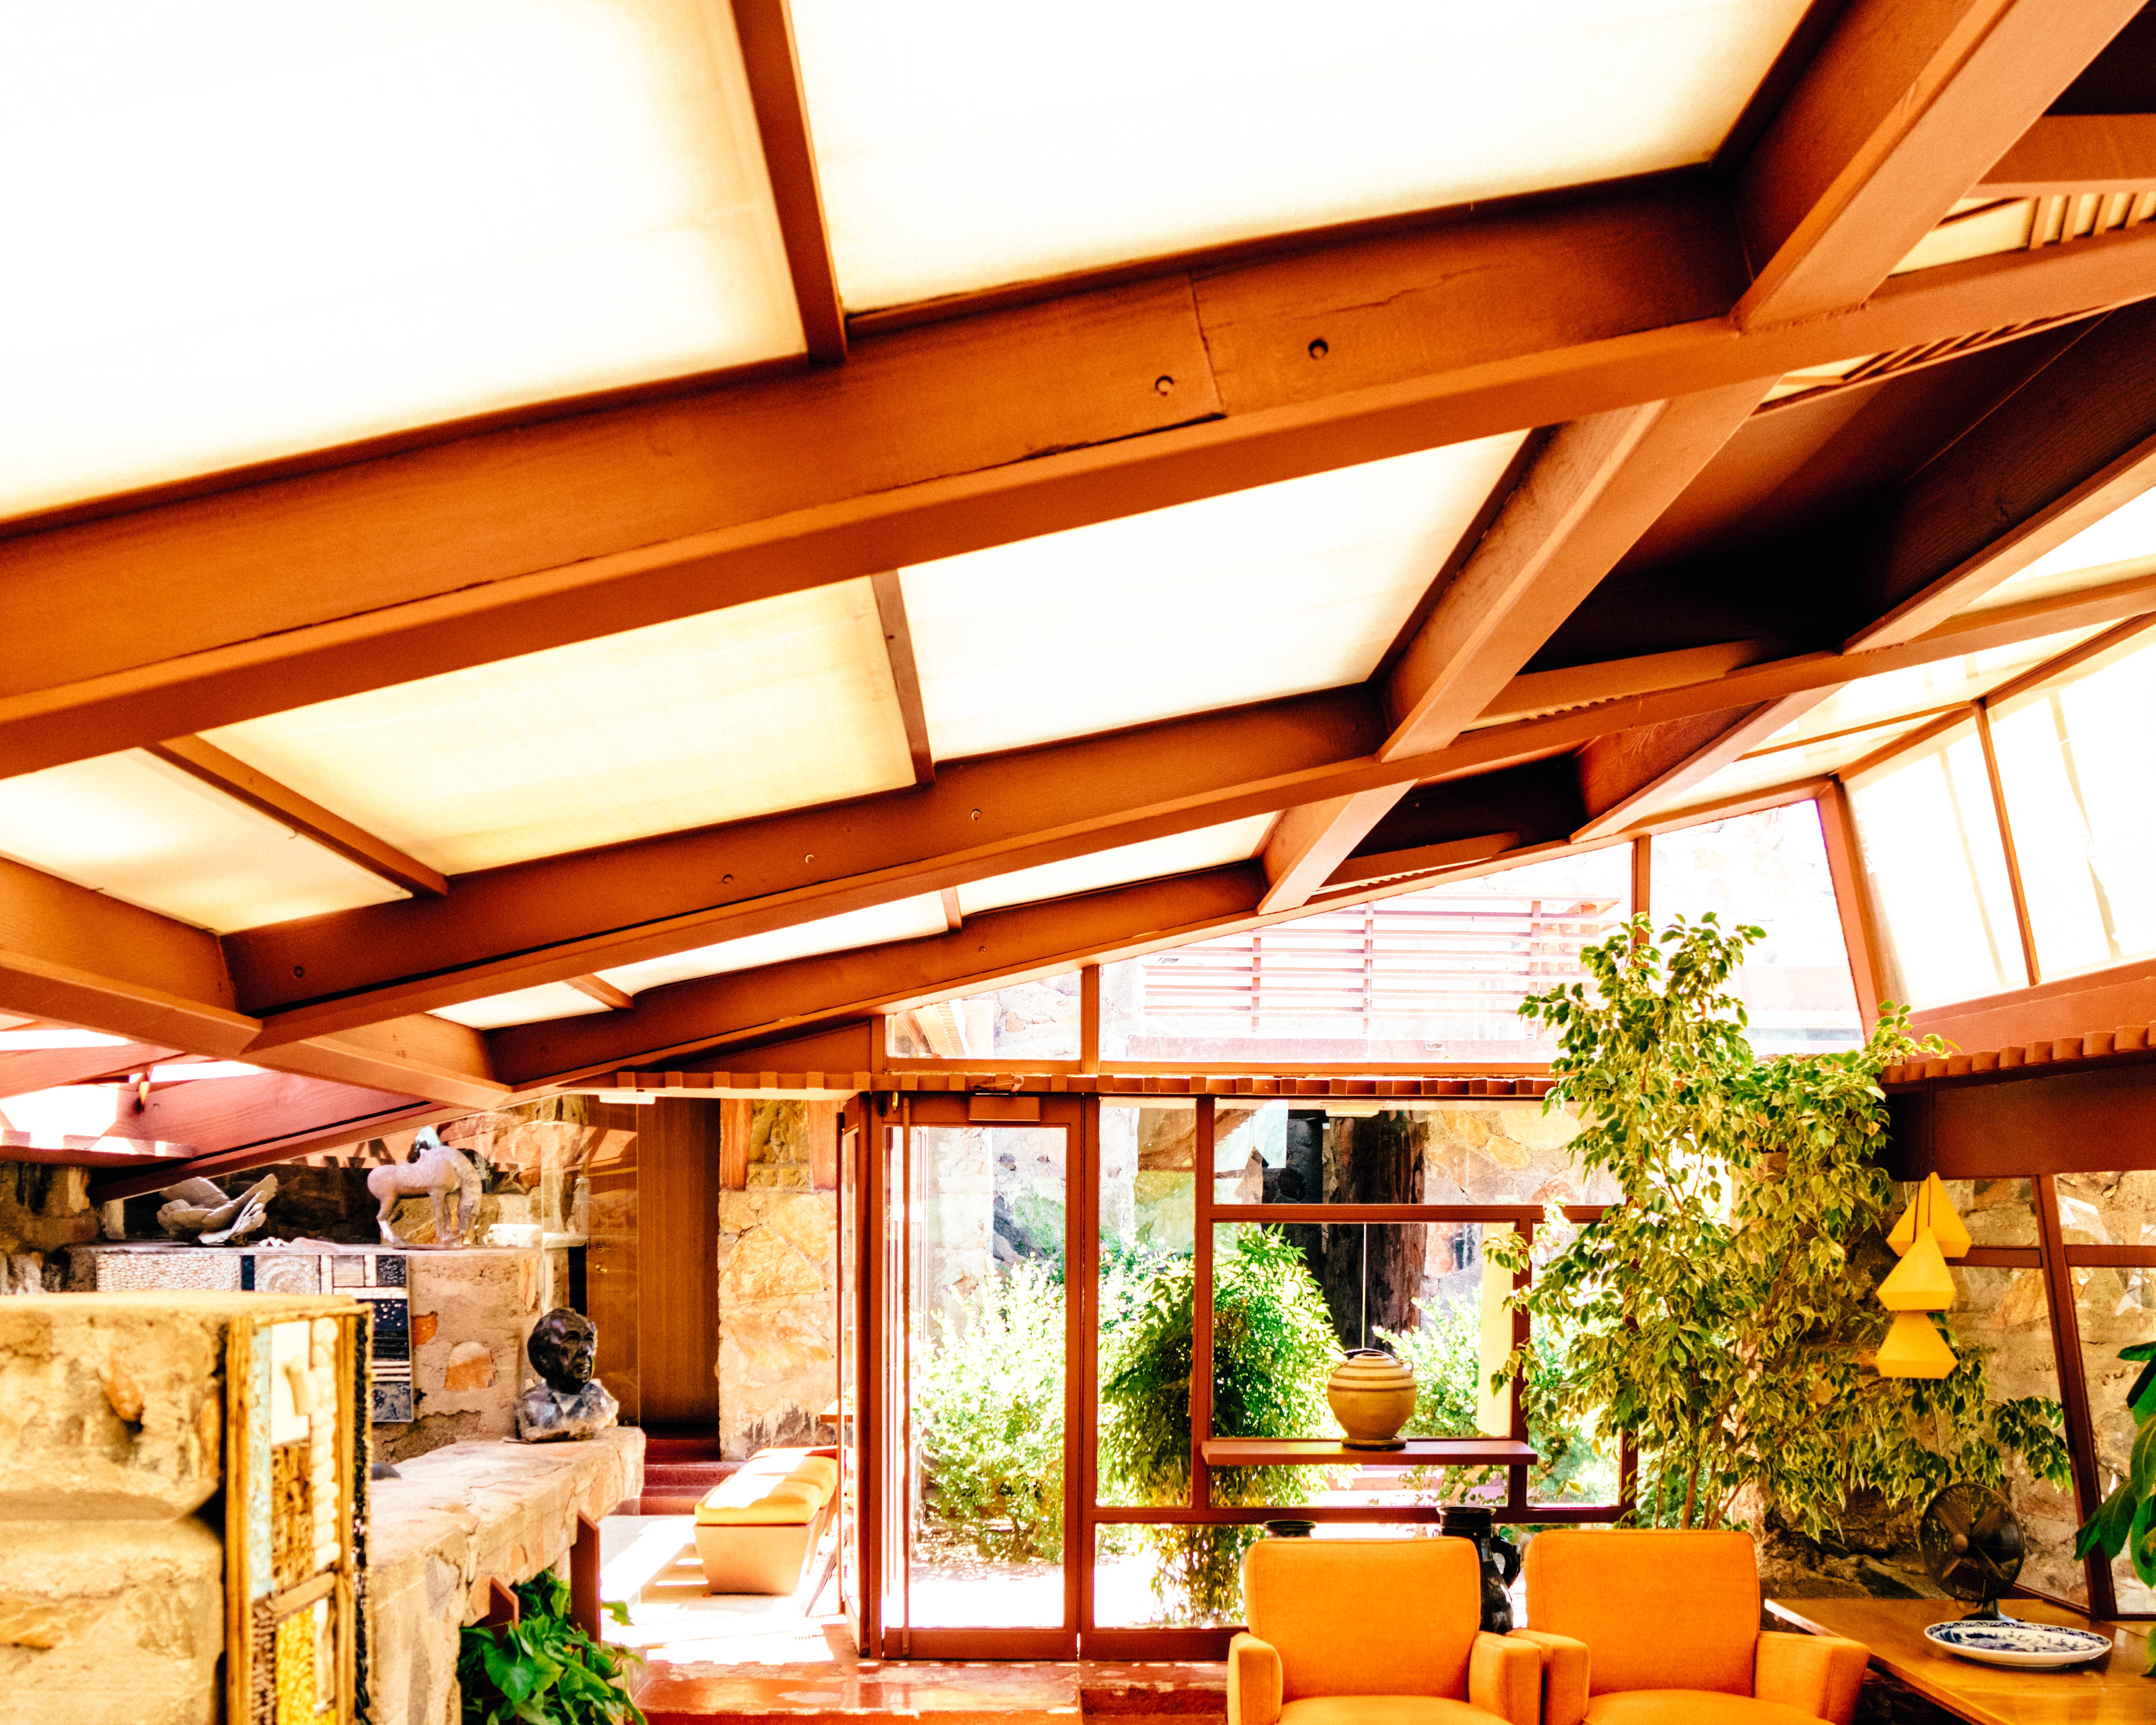 Wright's former living quarters at Taliesin West.